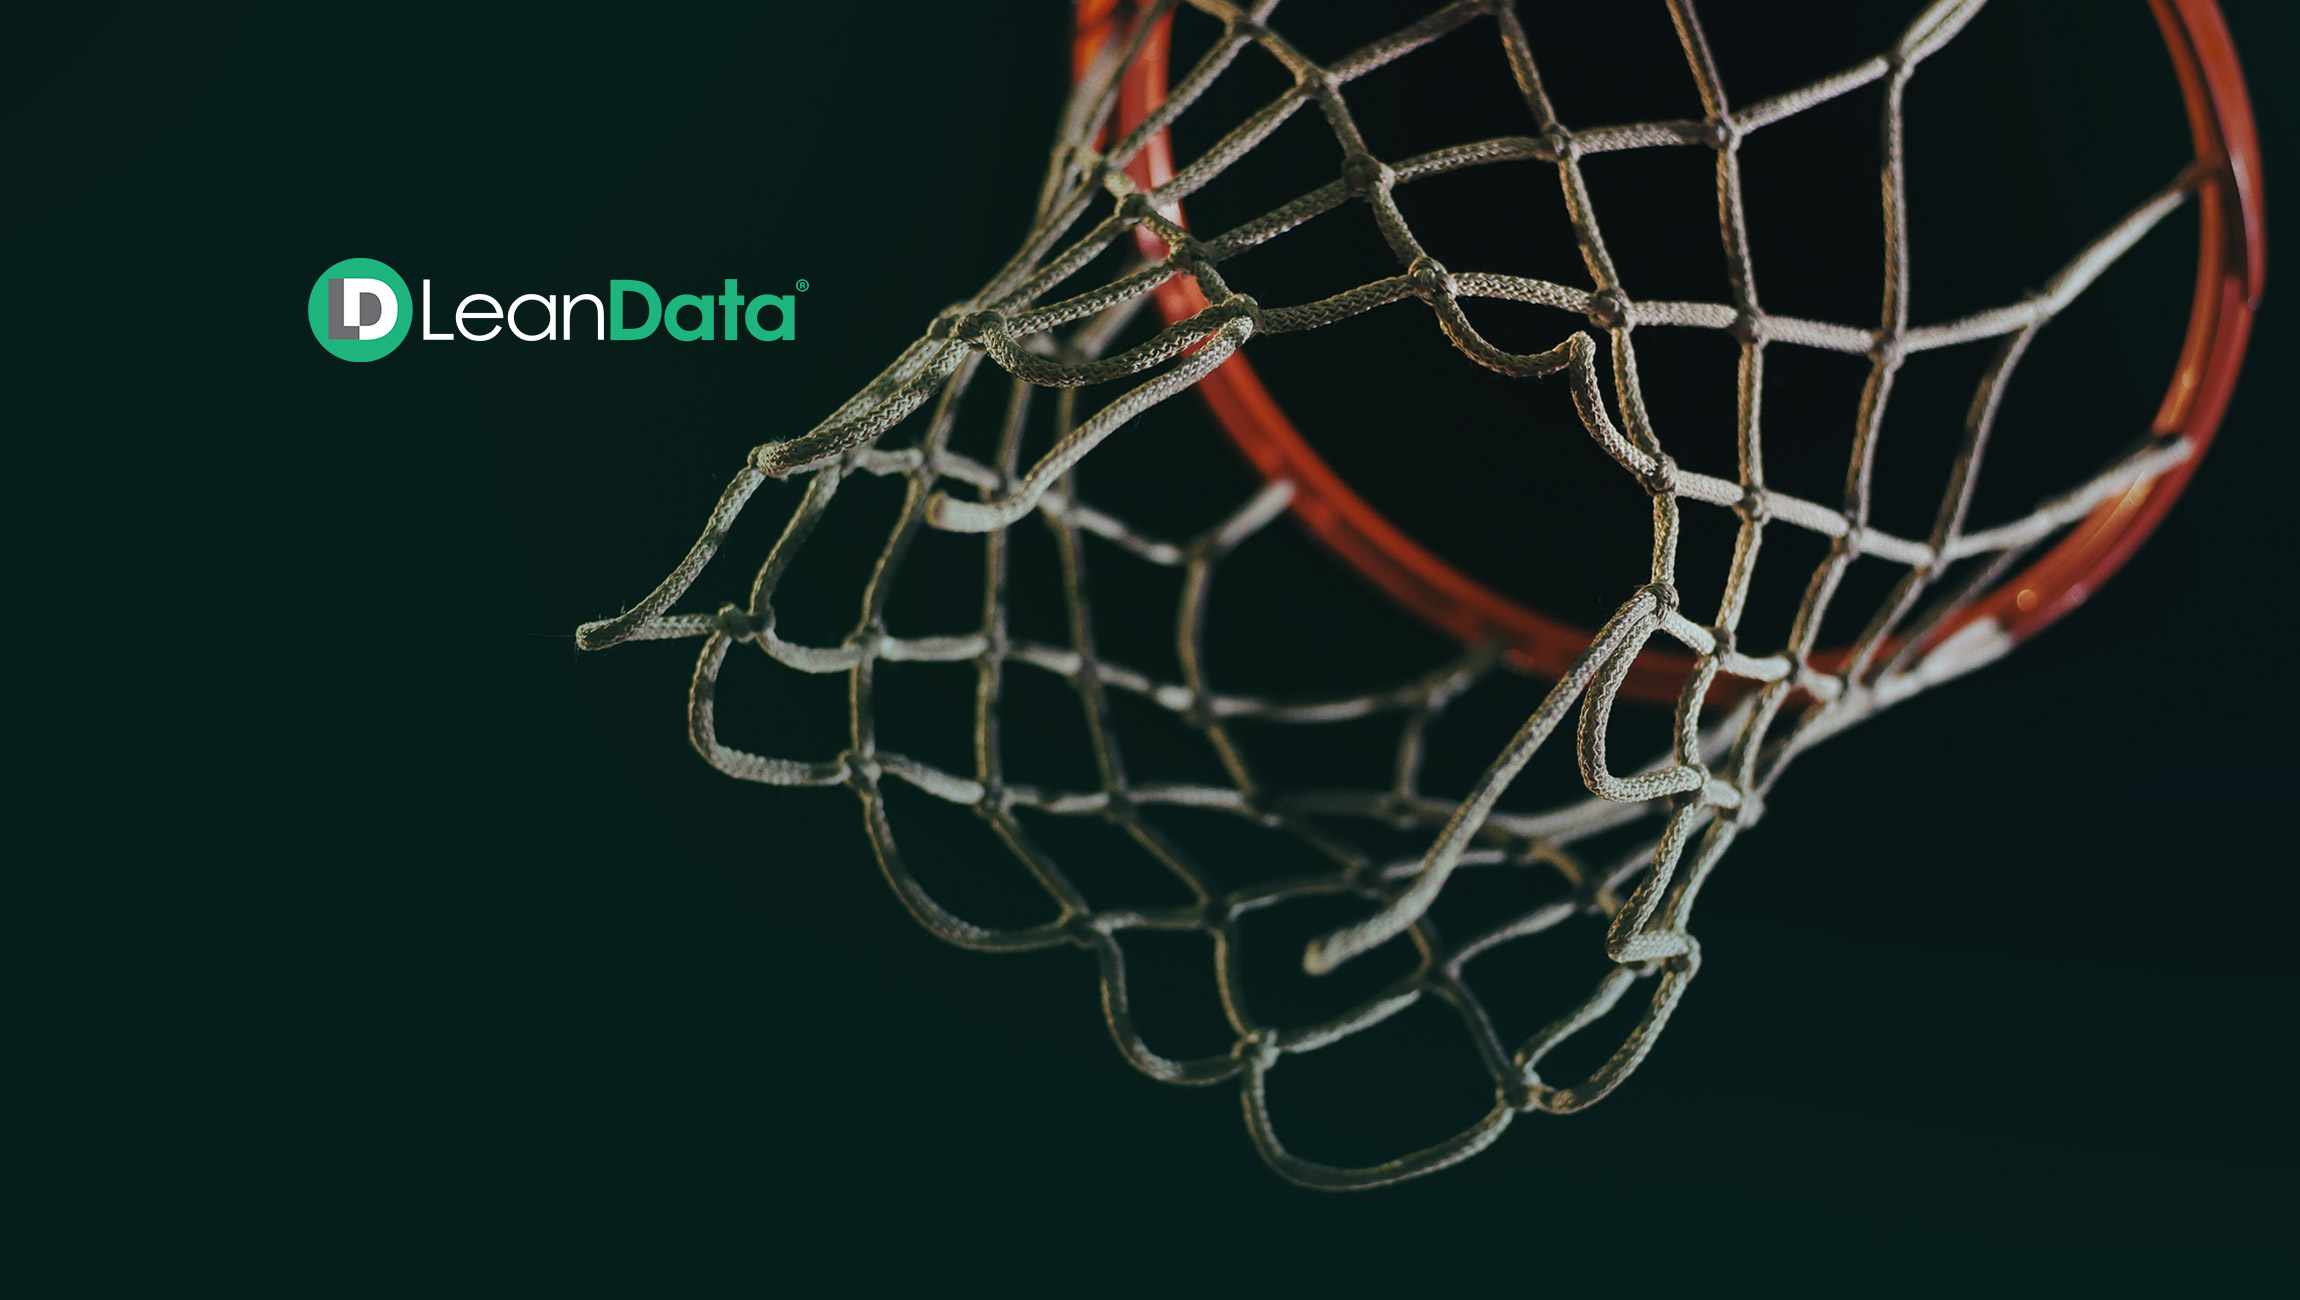 LeanData Launches Time-Based Routing to Accelerate the Lead-to-Revenue Cycle for Enterprises